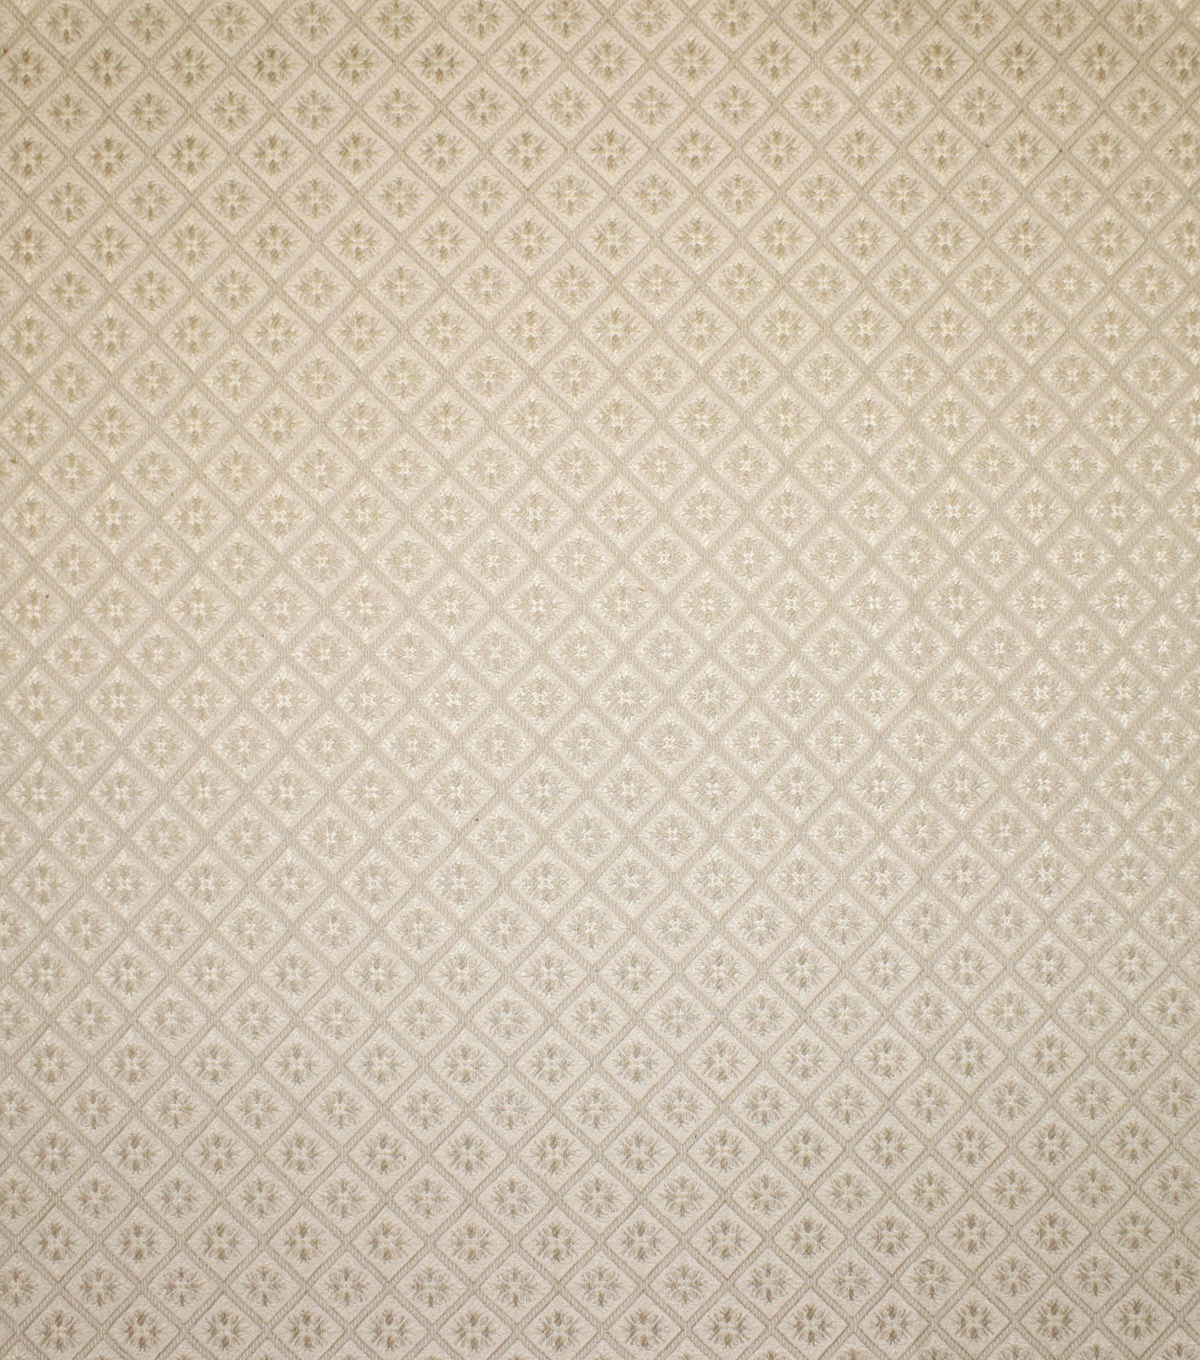 Home Decor 8\u0022x8\u0022 Fabric Swatch-Upholstery Fabric Barrow M6839-5806 Oyster